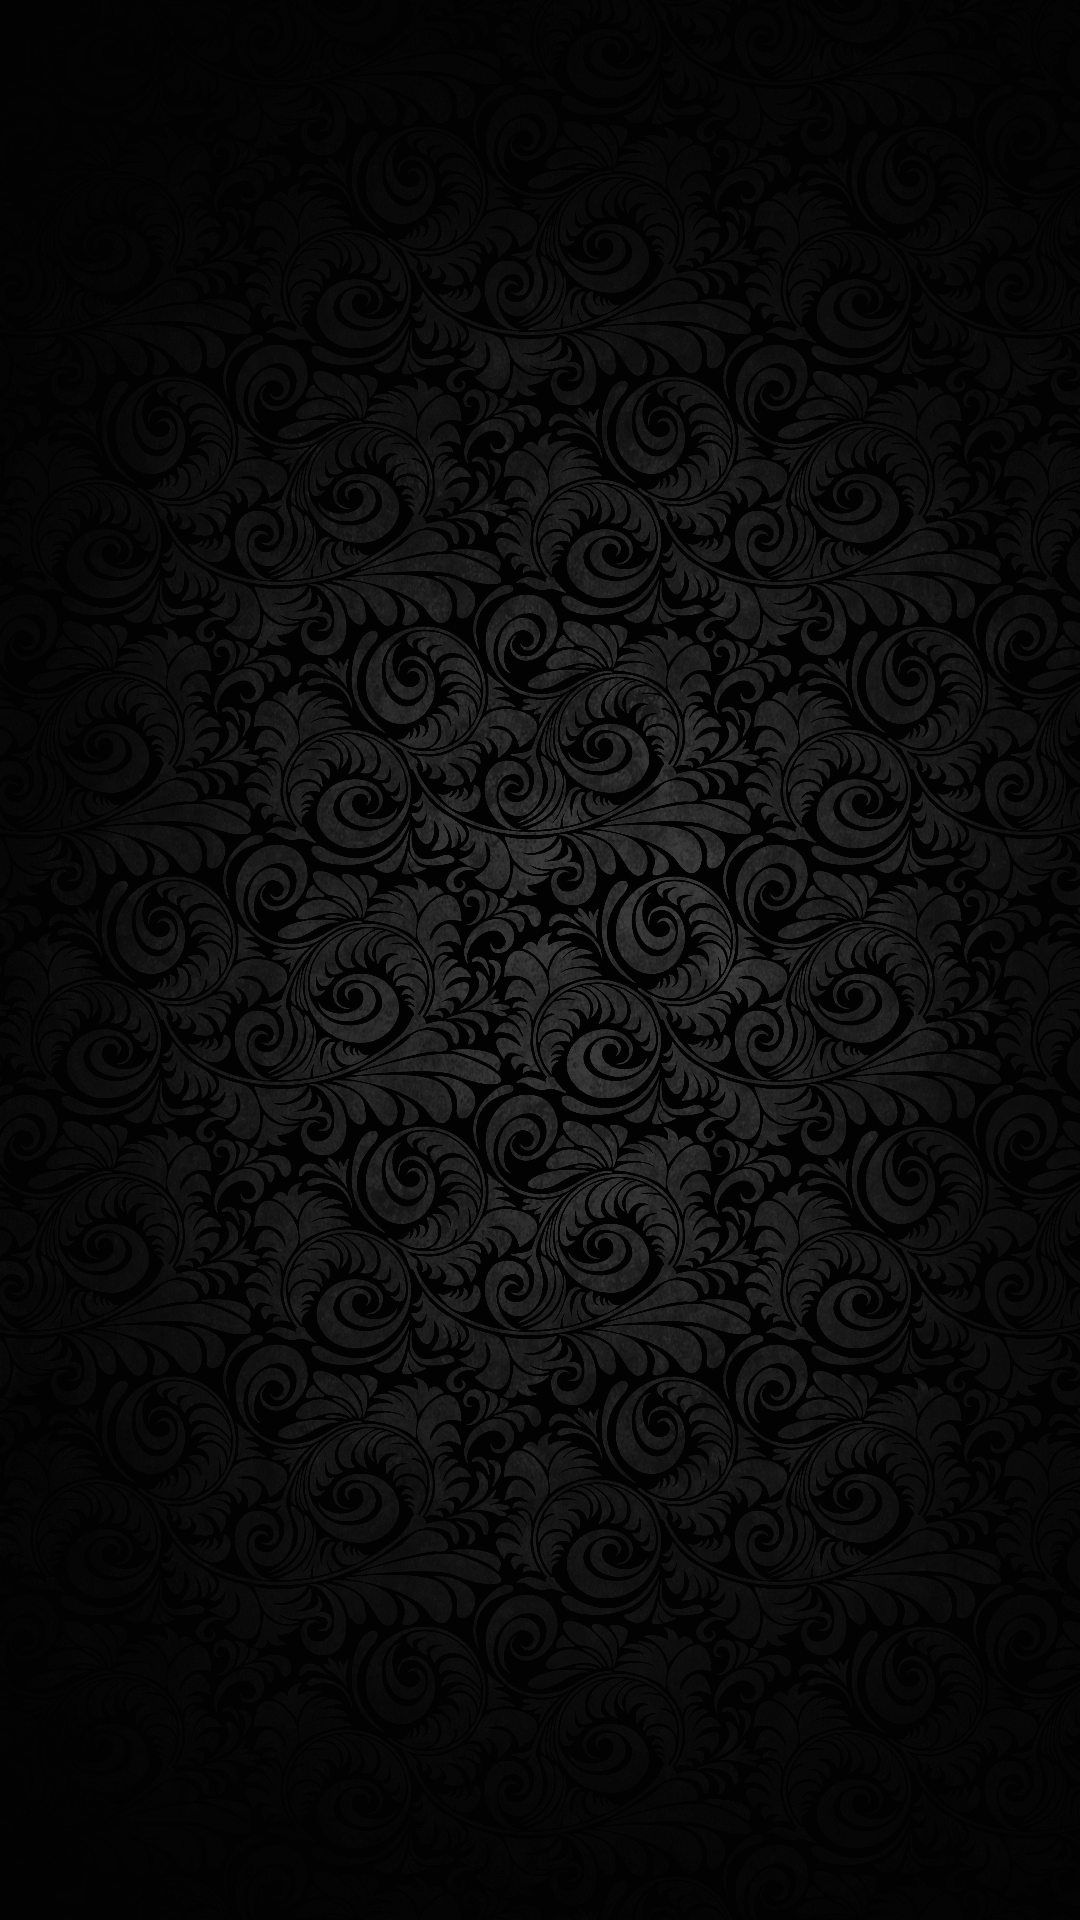 Wallpaper Full Hd 1080 X 1920 Smartphone Dark Elegant Backgrounds